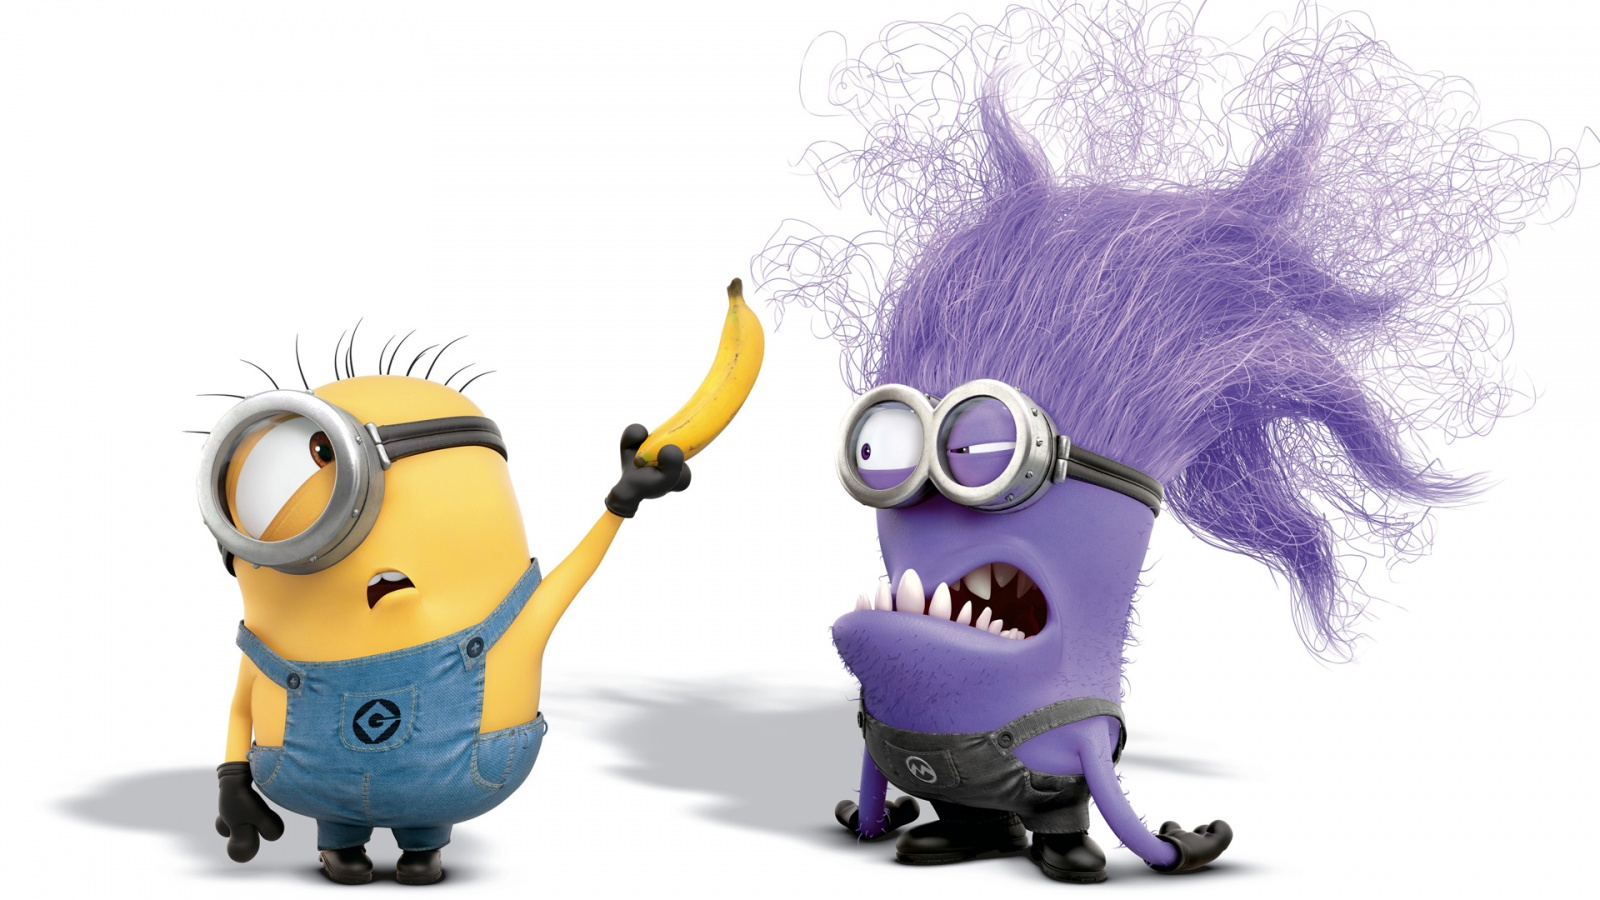 despicable me 2 minions wallpapers